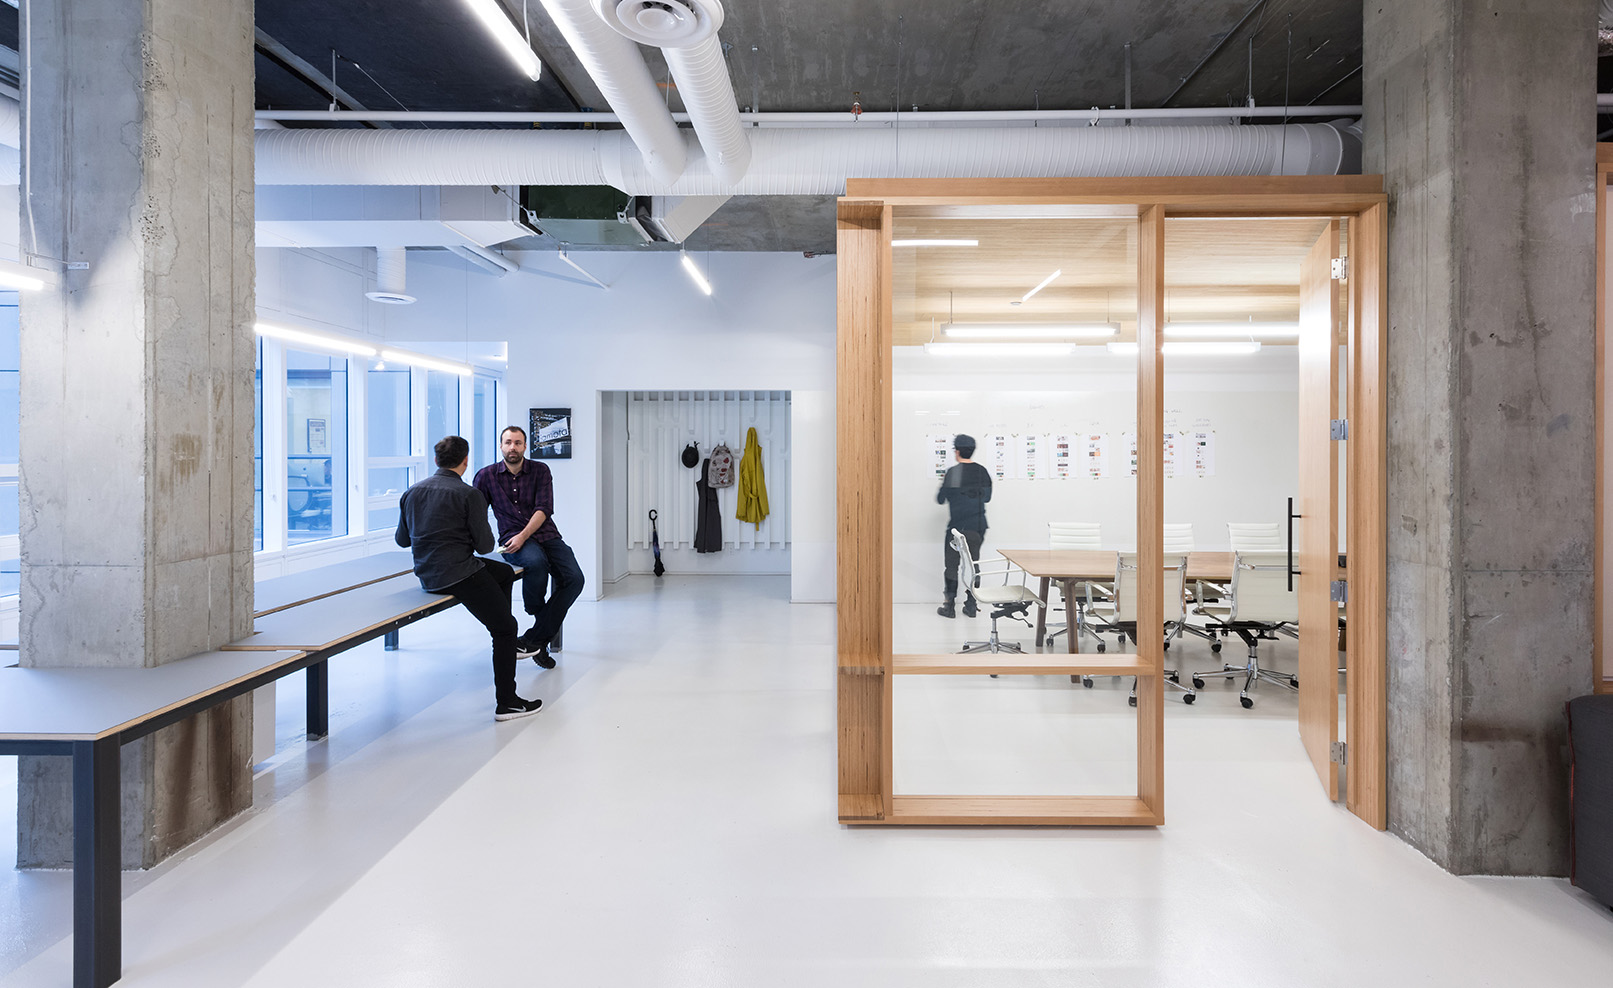 A Look Inside Private Ecommerce Digital Agency Offices in Vancouver